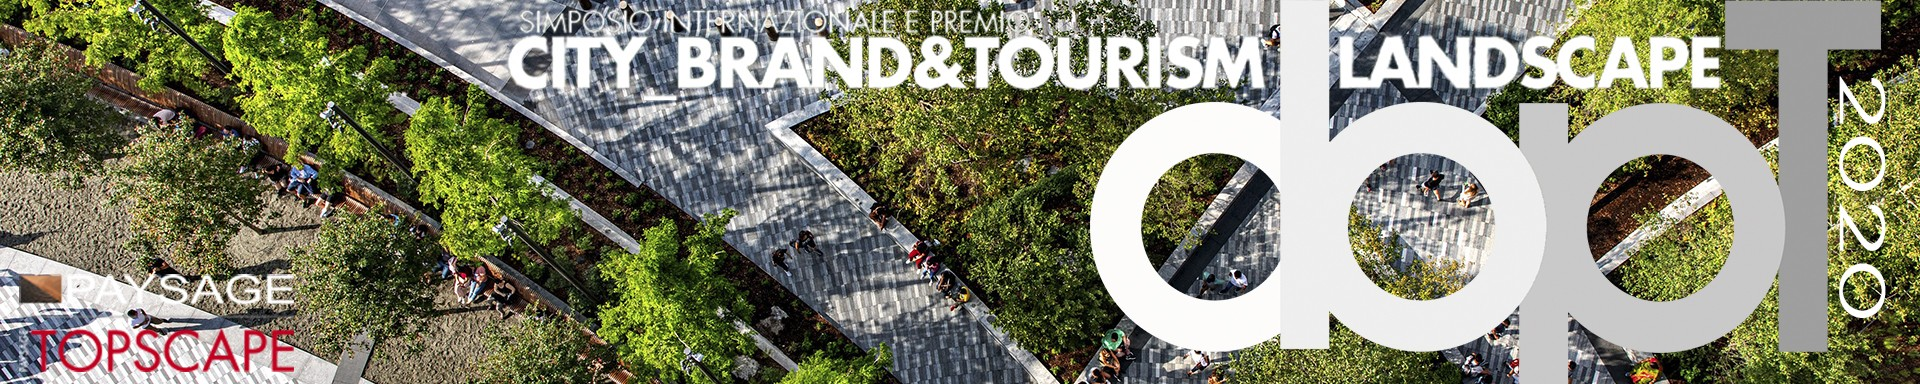 immagine header CITY_BRAND&TOURISM LANDSCAPE 2020